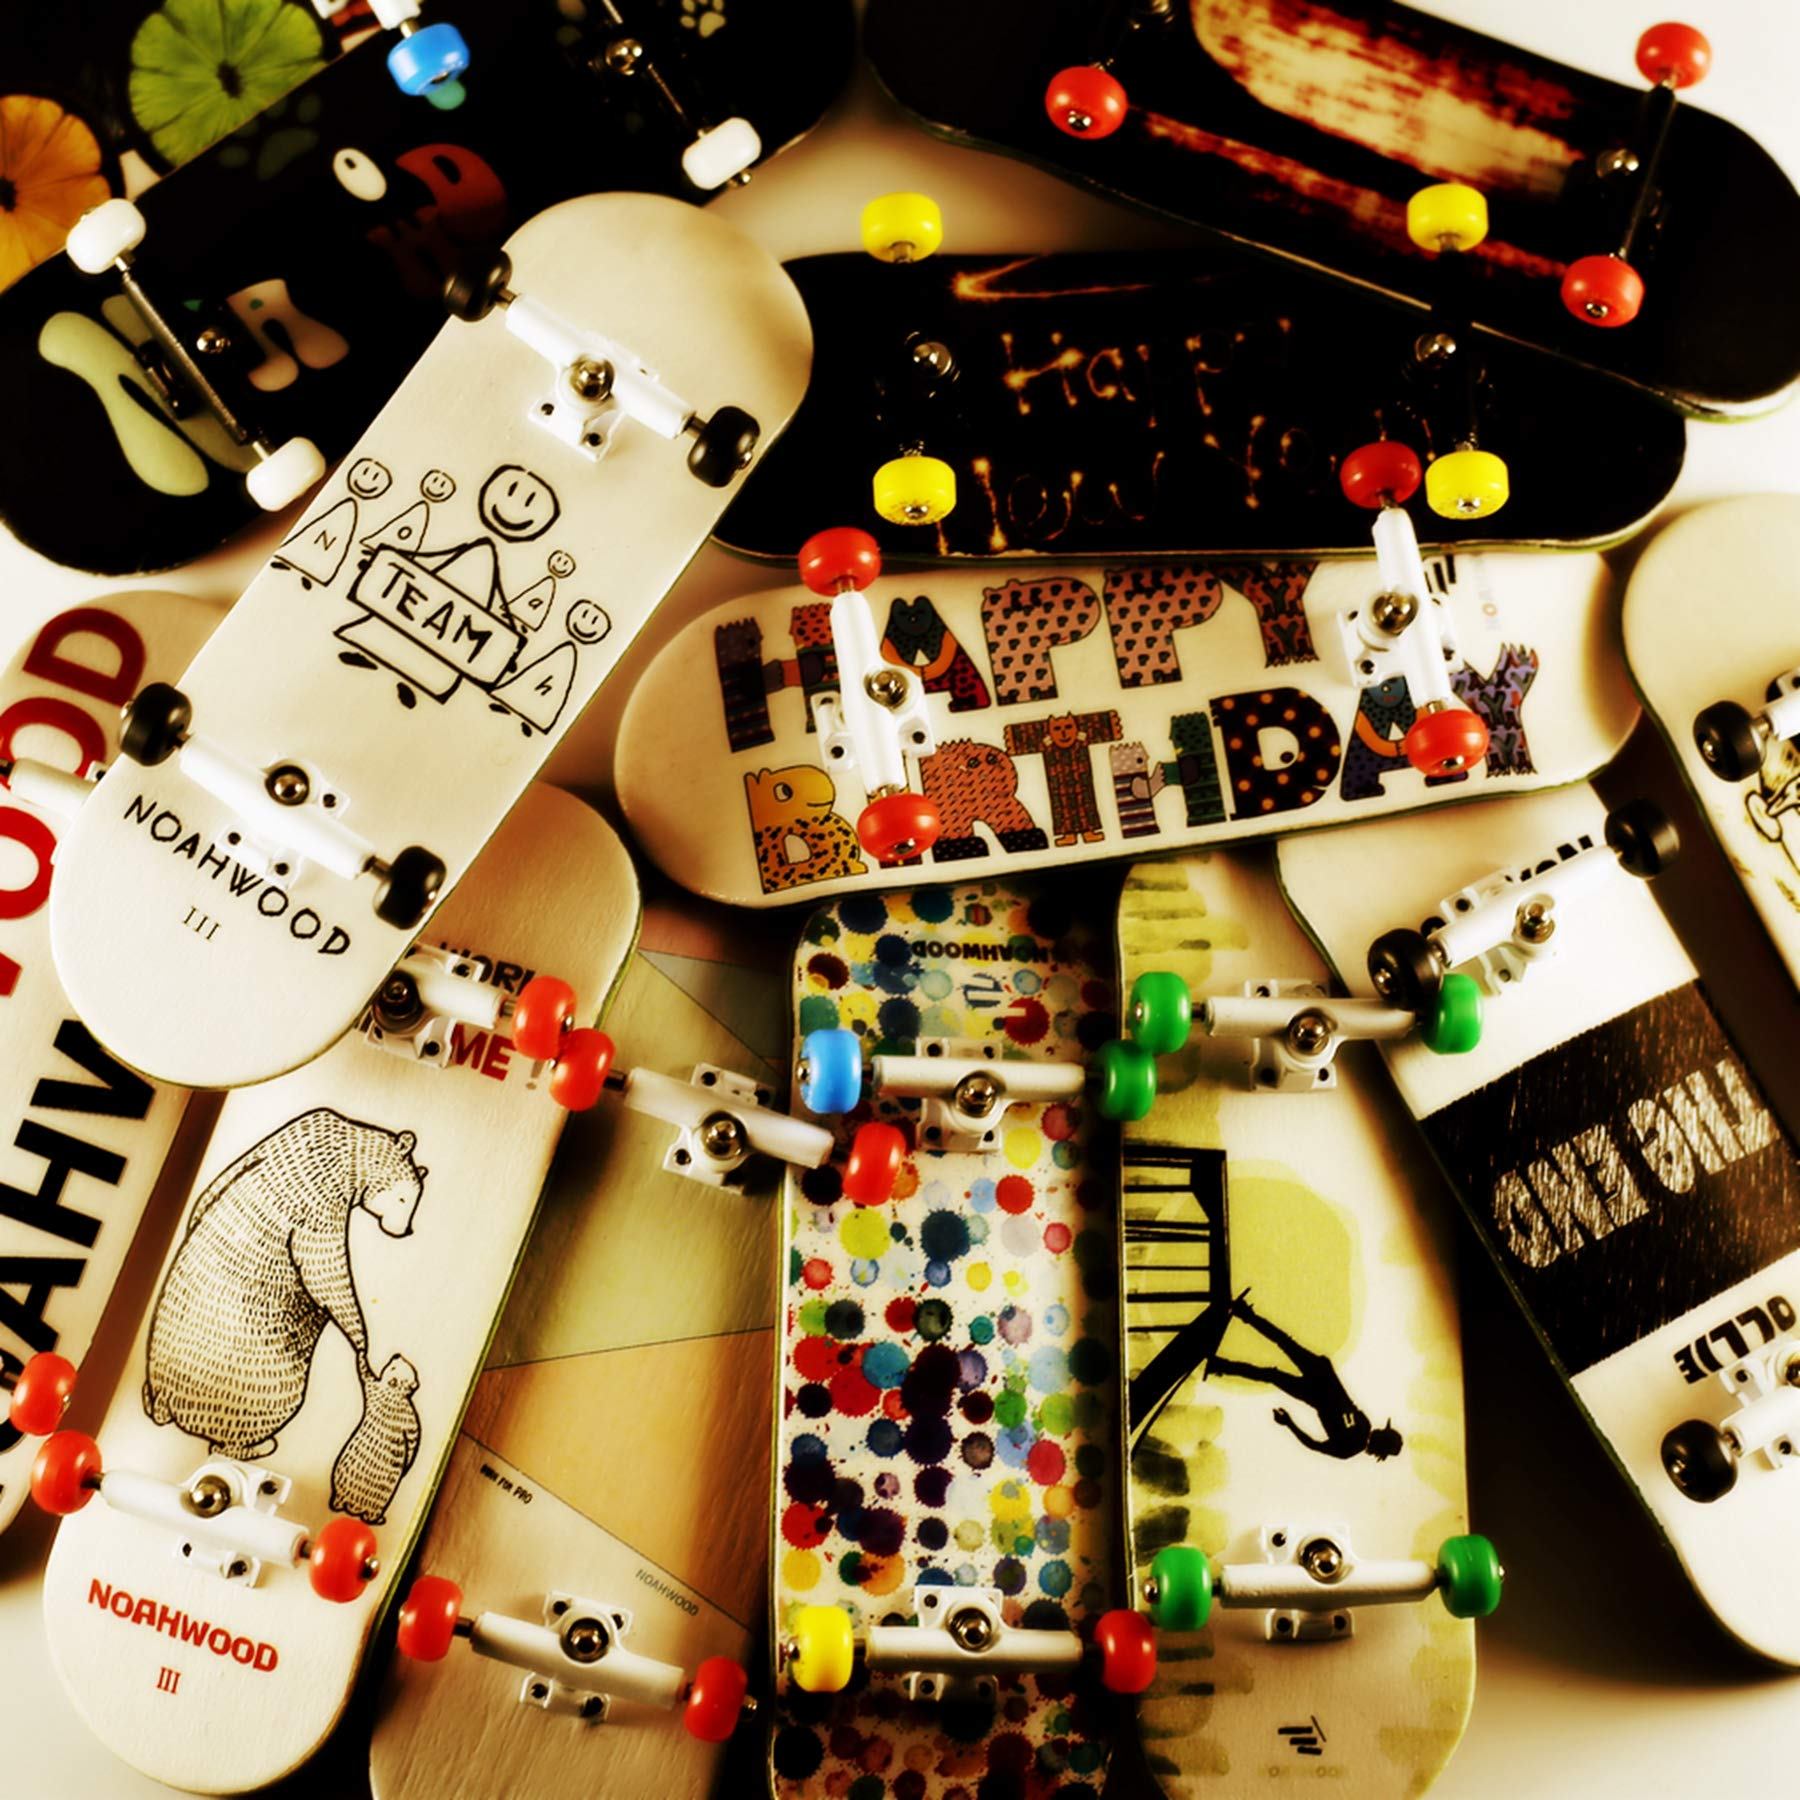 NOAHWOOD Wooden PRO Fingerboards (Deck,Truck,Wheel / a Set) (Happy New Year I) by NOAHWOOD (Image #9)